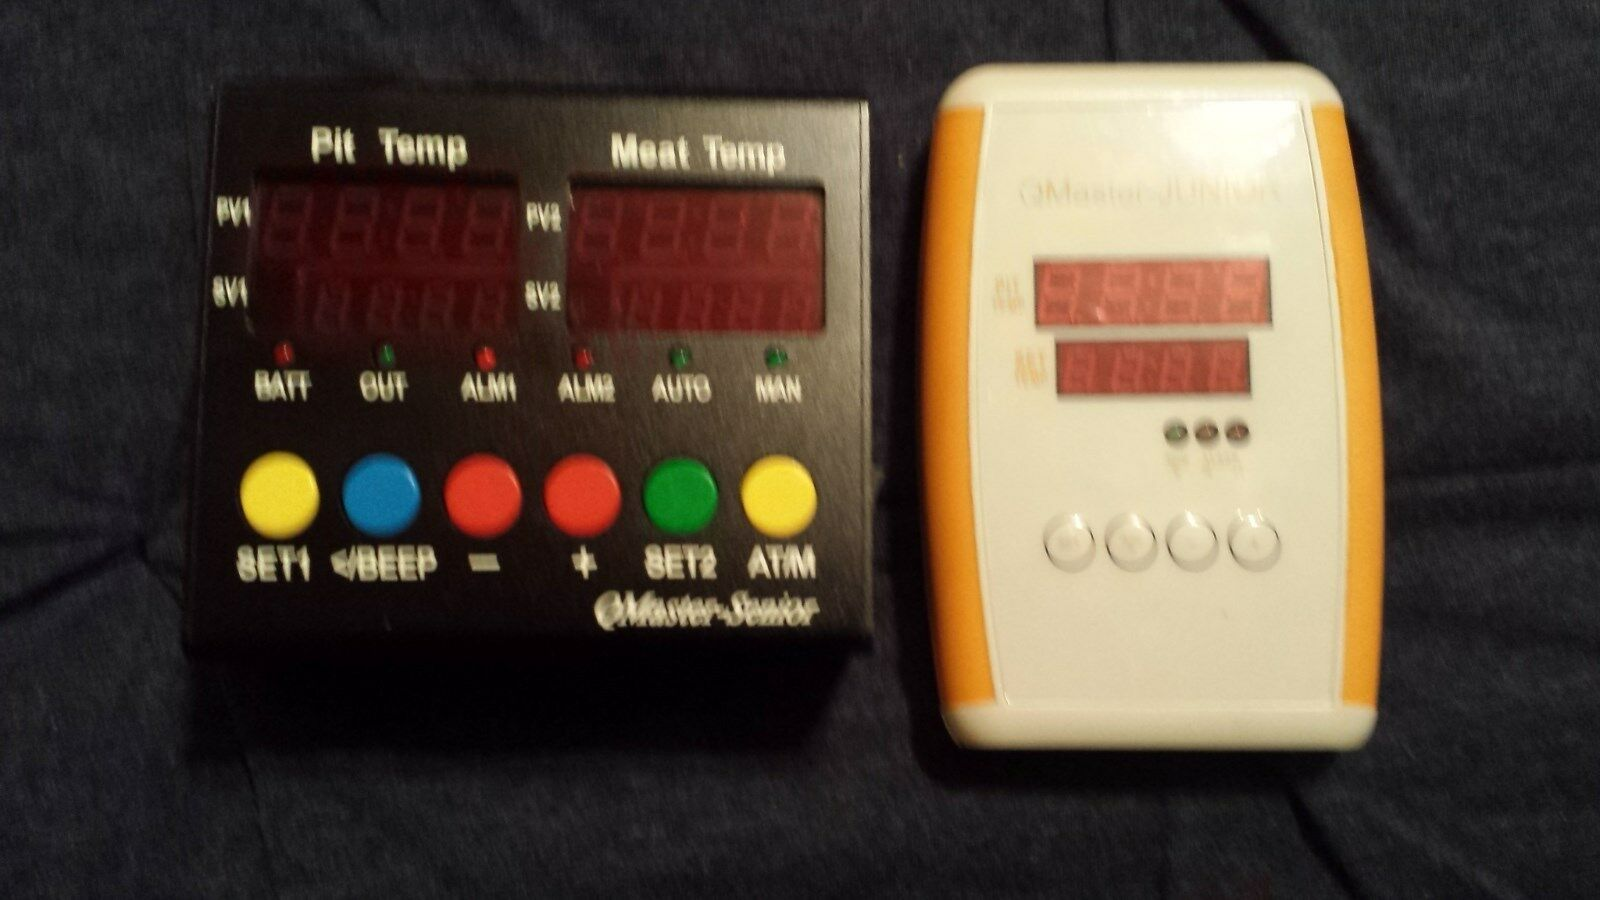 QMaster Meat Probe Senior Auto. Temp. Controllers ATC